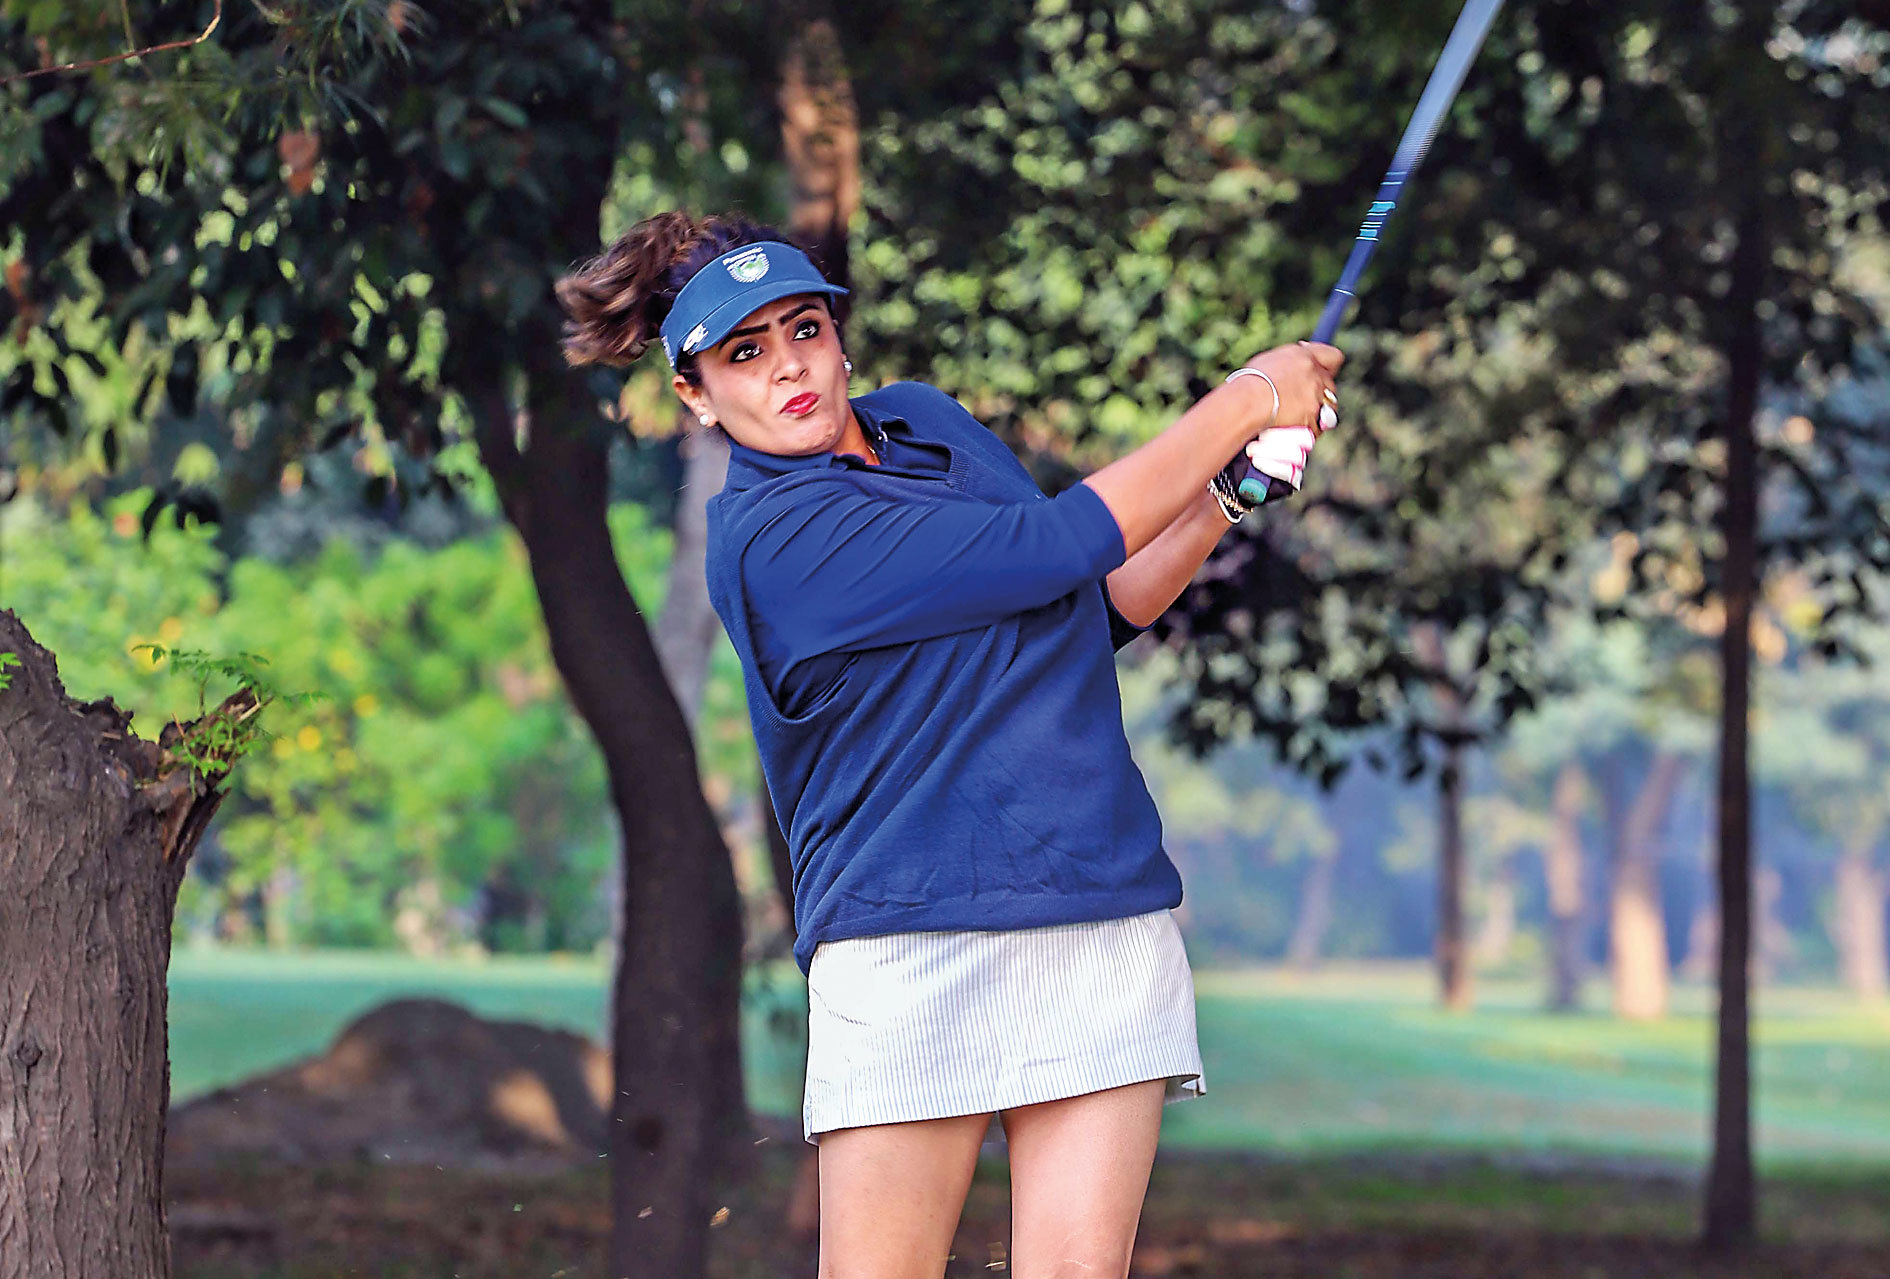 Hundreds of amateur golfers gathered at the Noida Golf Club to take part in the sixth edition  of the annual Golf  Championship